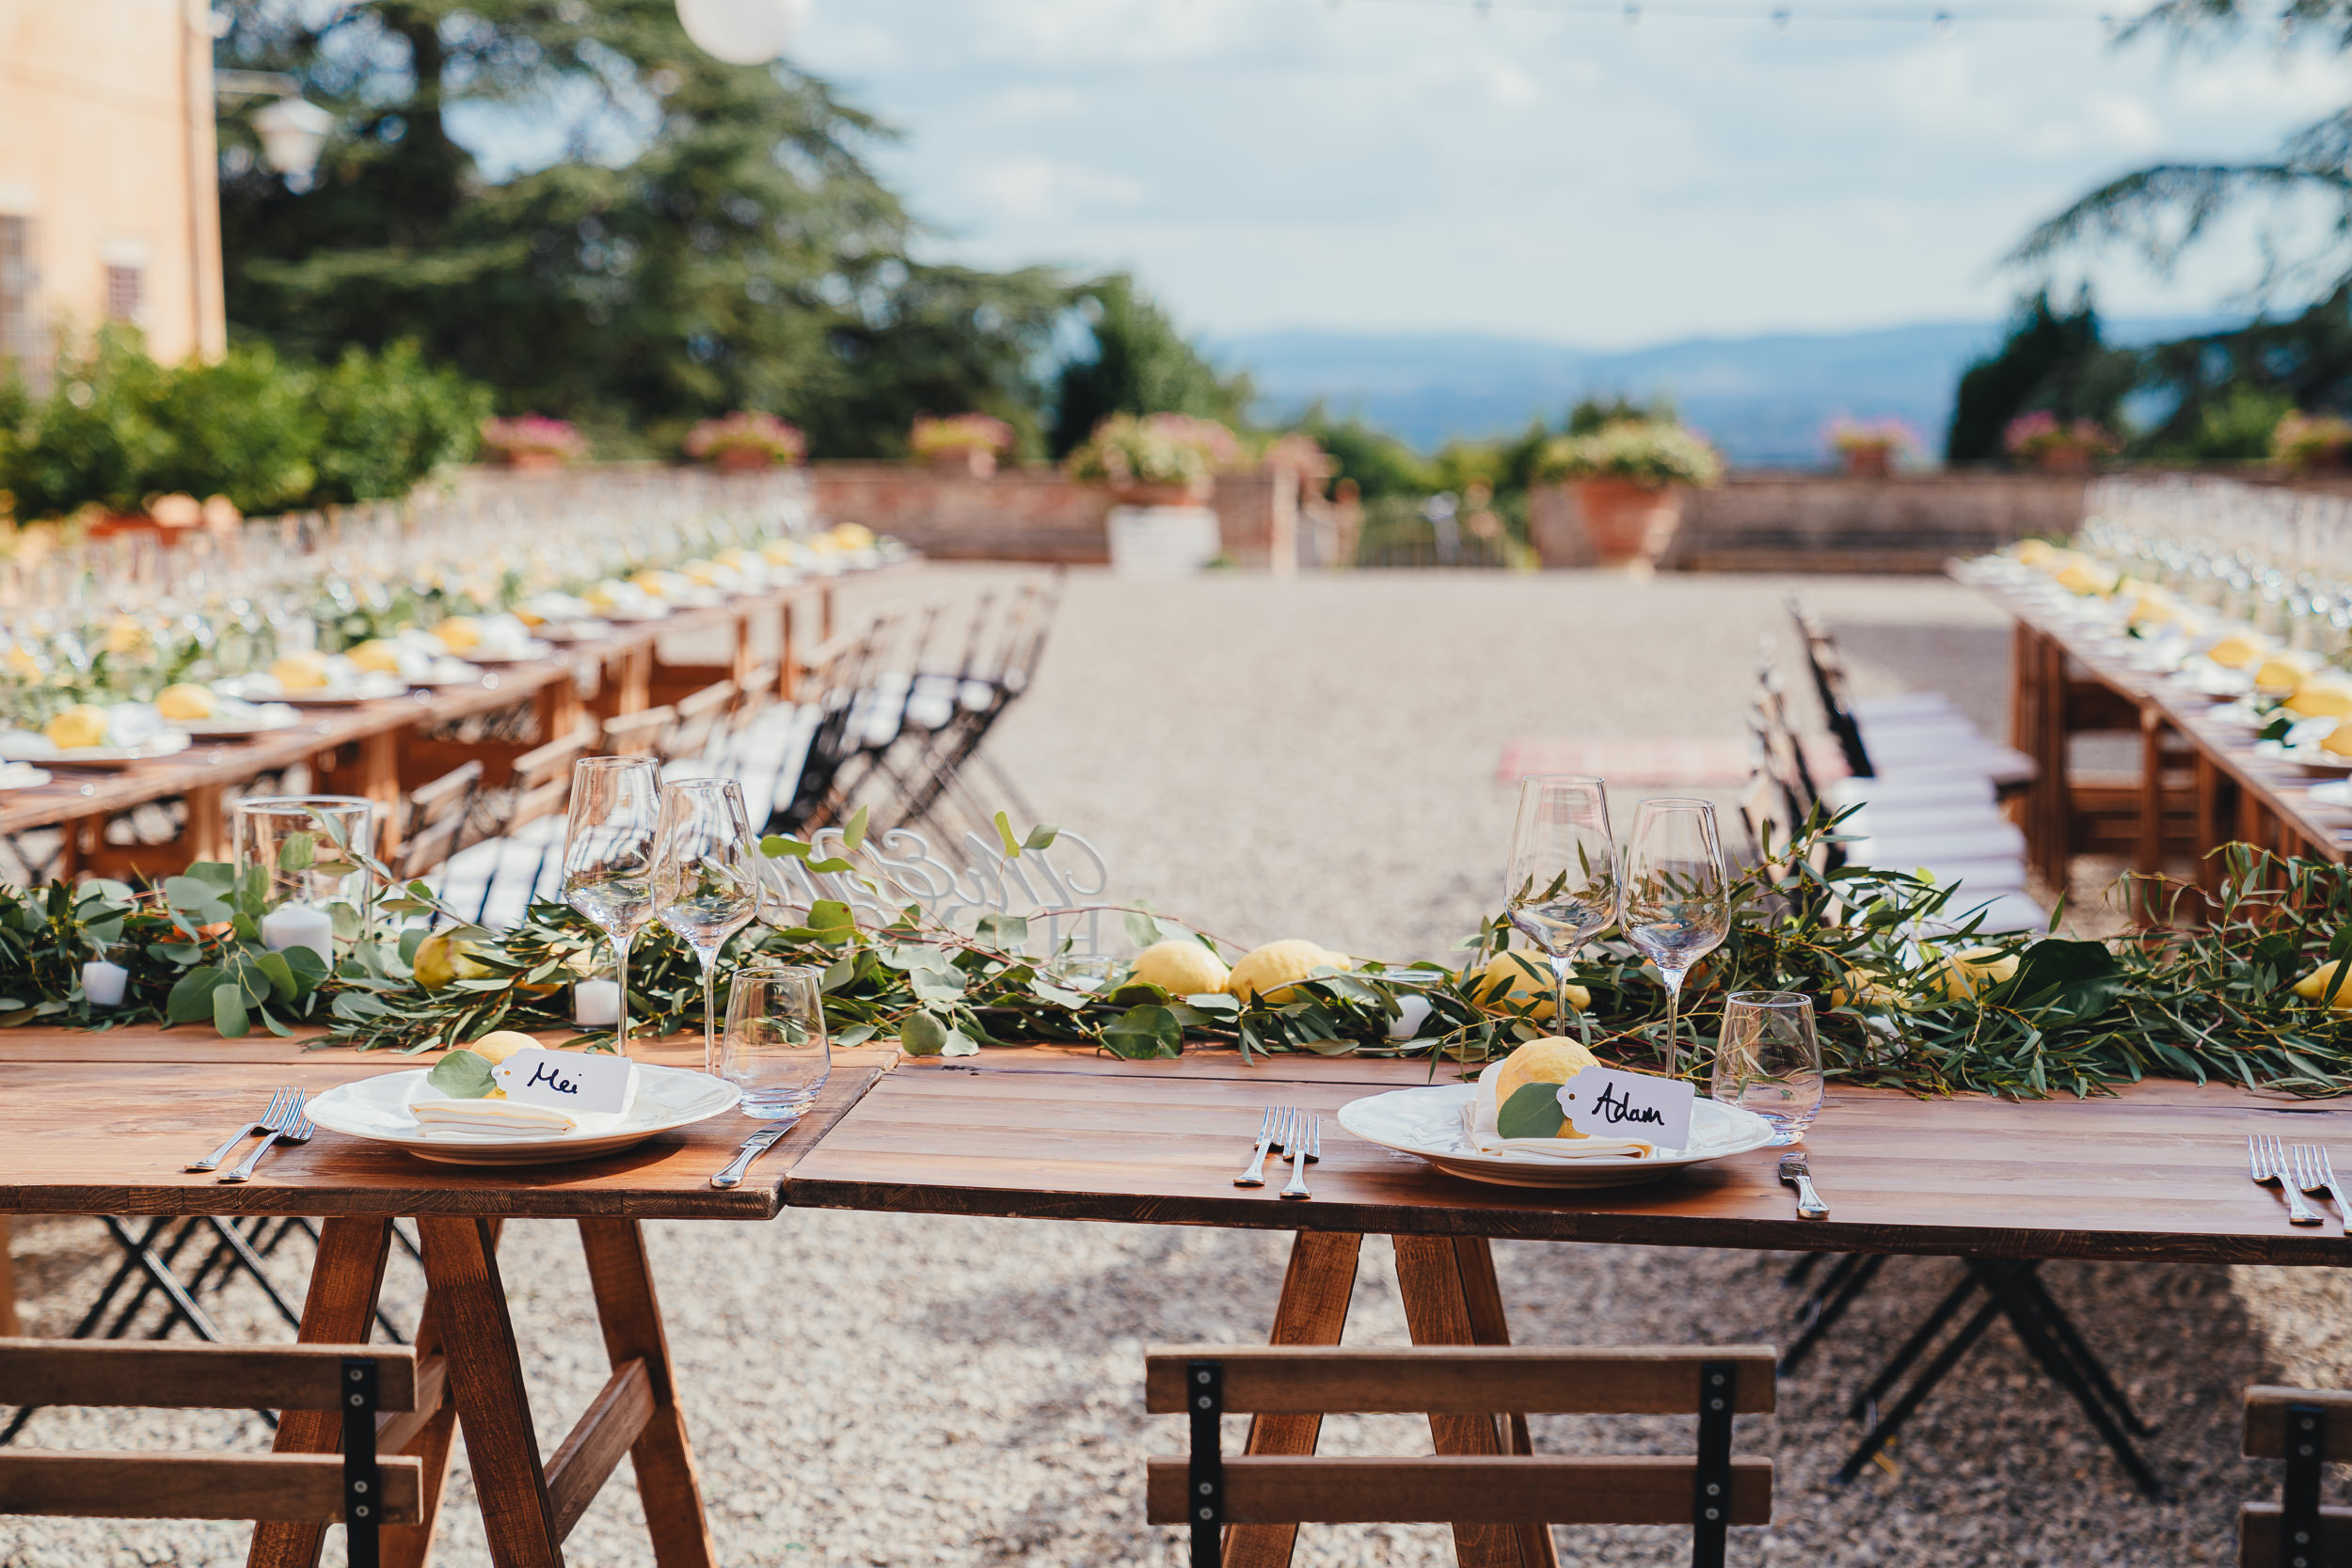 Tuscan Villa Wedding - Photograph of the table decorations